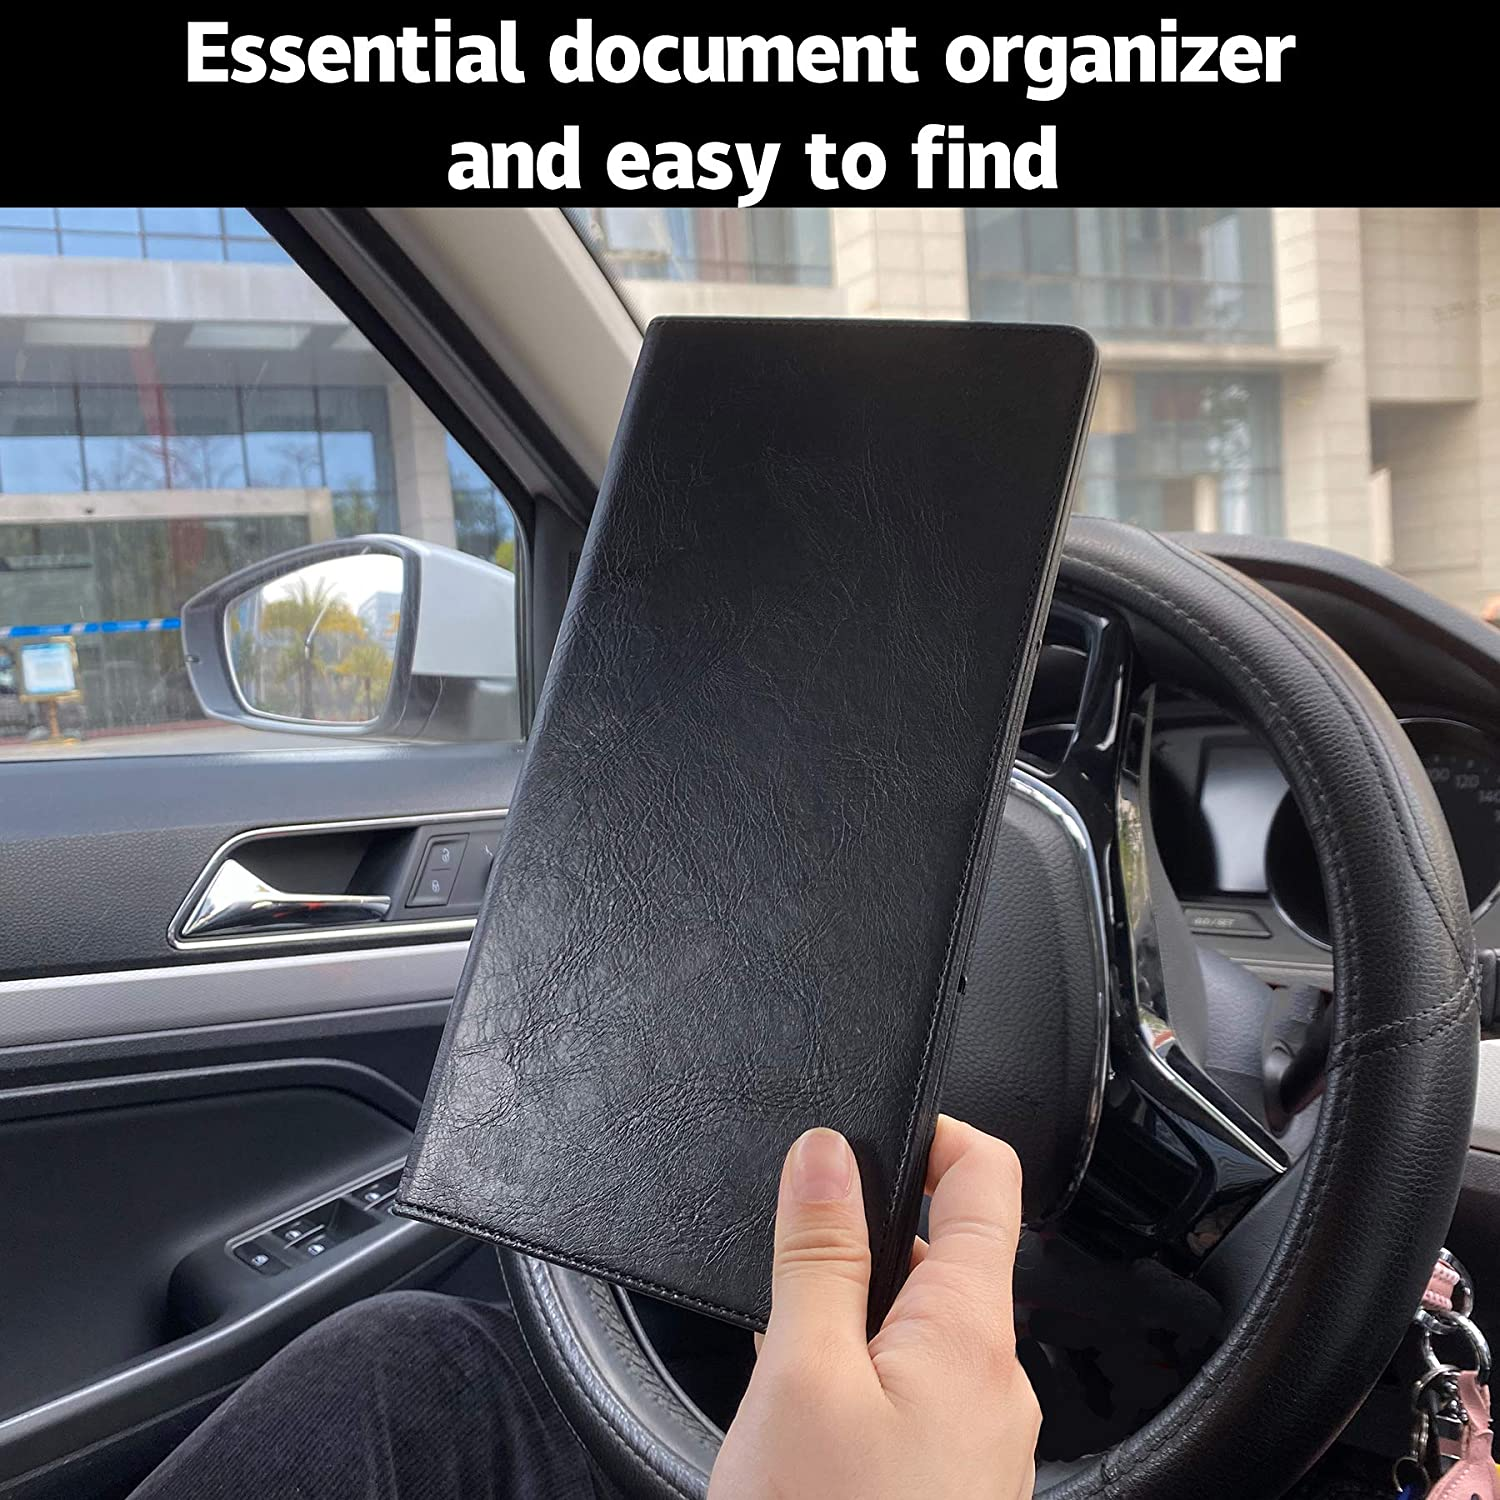 MICUB Auto Car Registration and Insurance Documents Holder - PU Leather Vehicle Glove Box Documents Organizer Wallet,Case Holder for Essential Automobile Documents